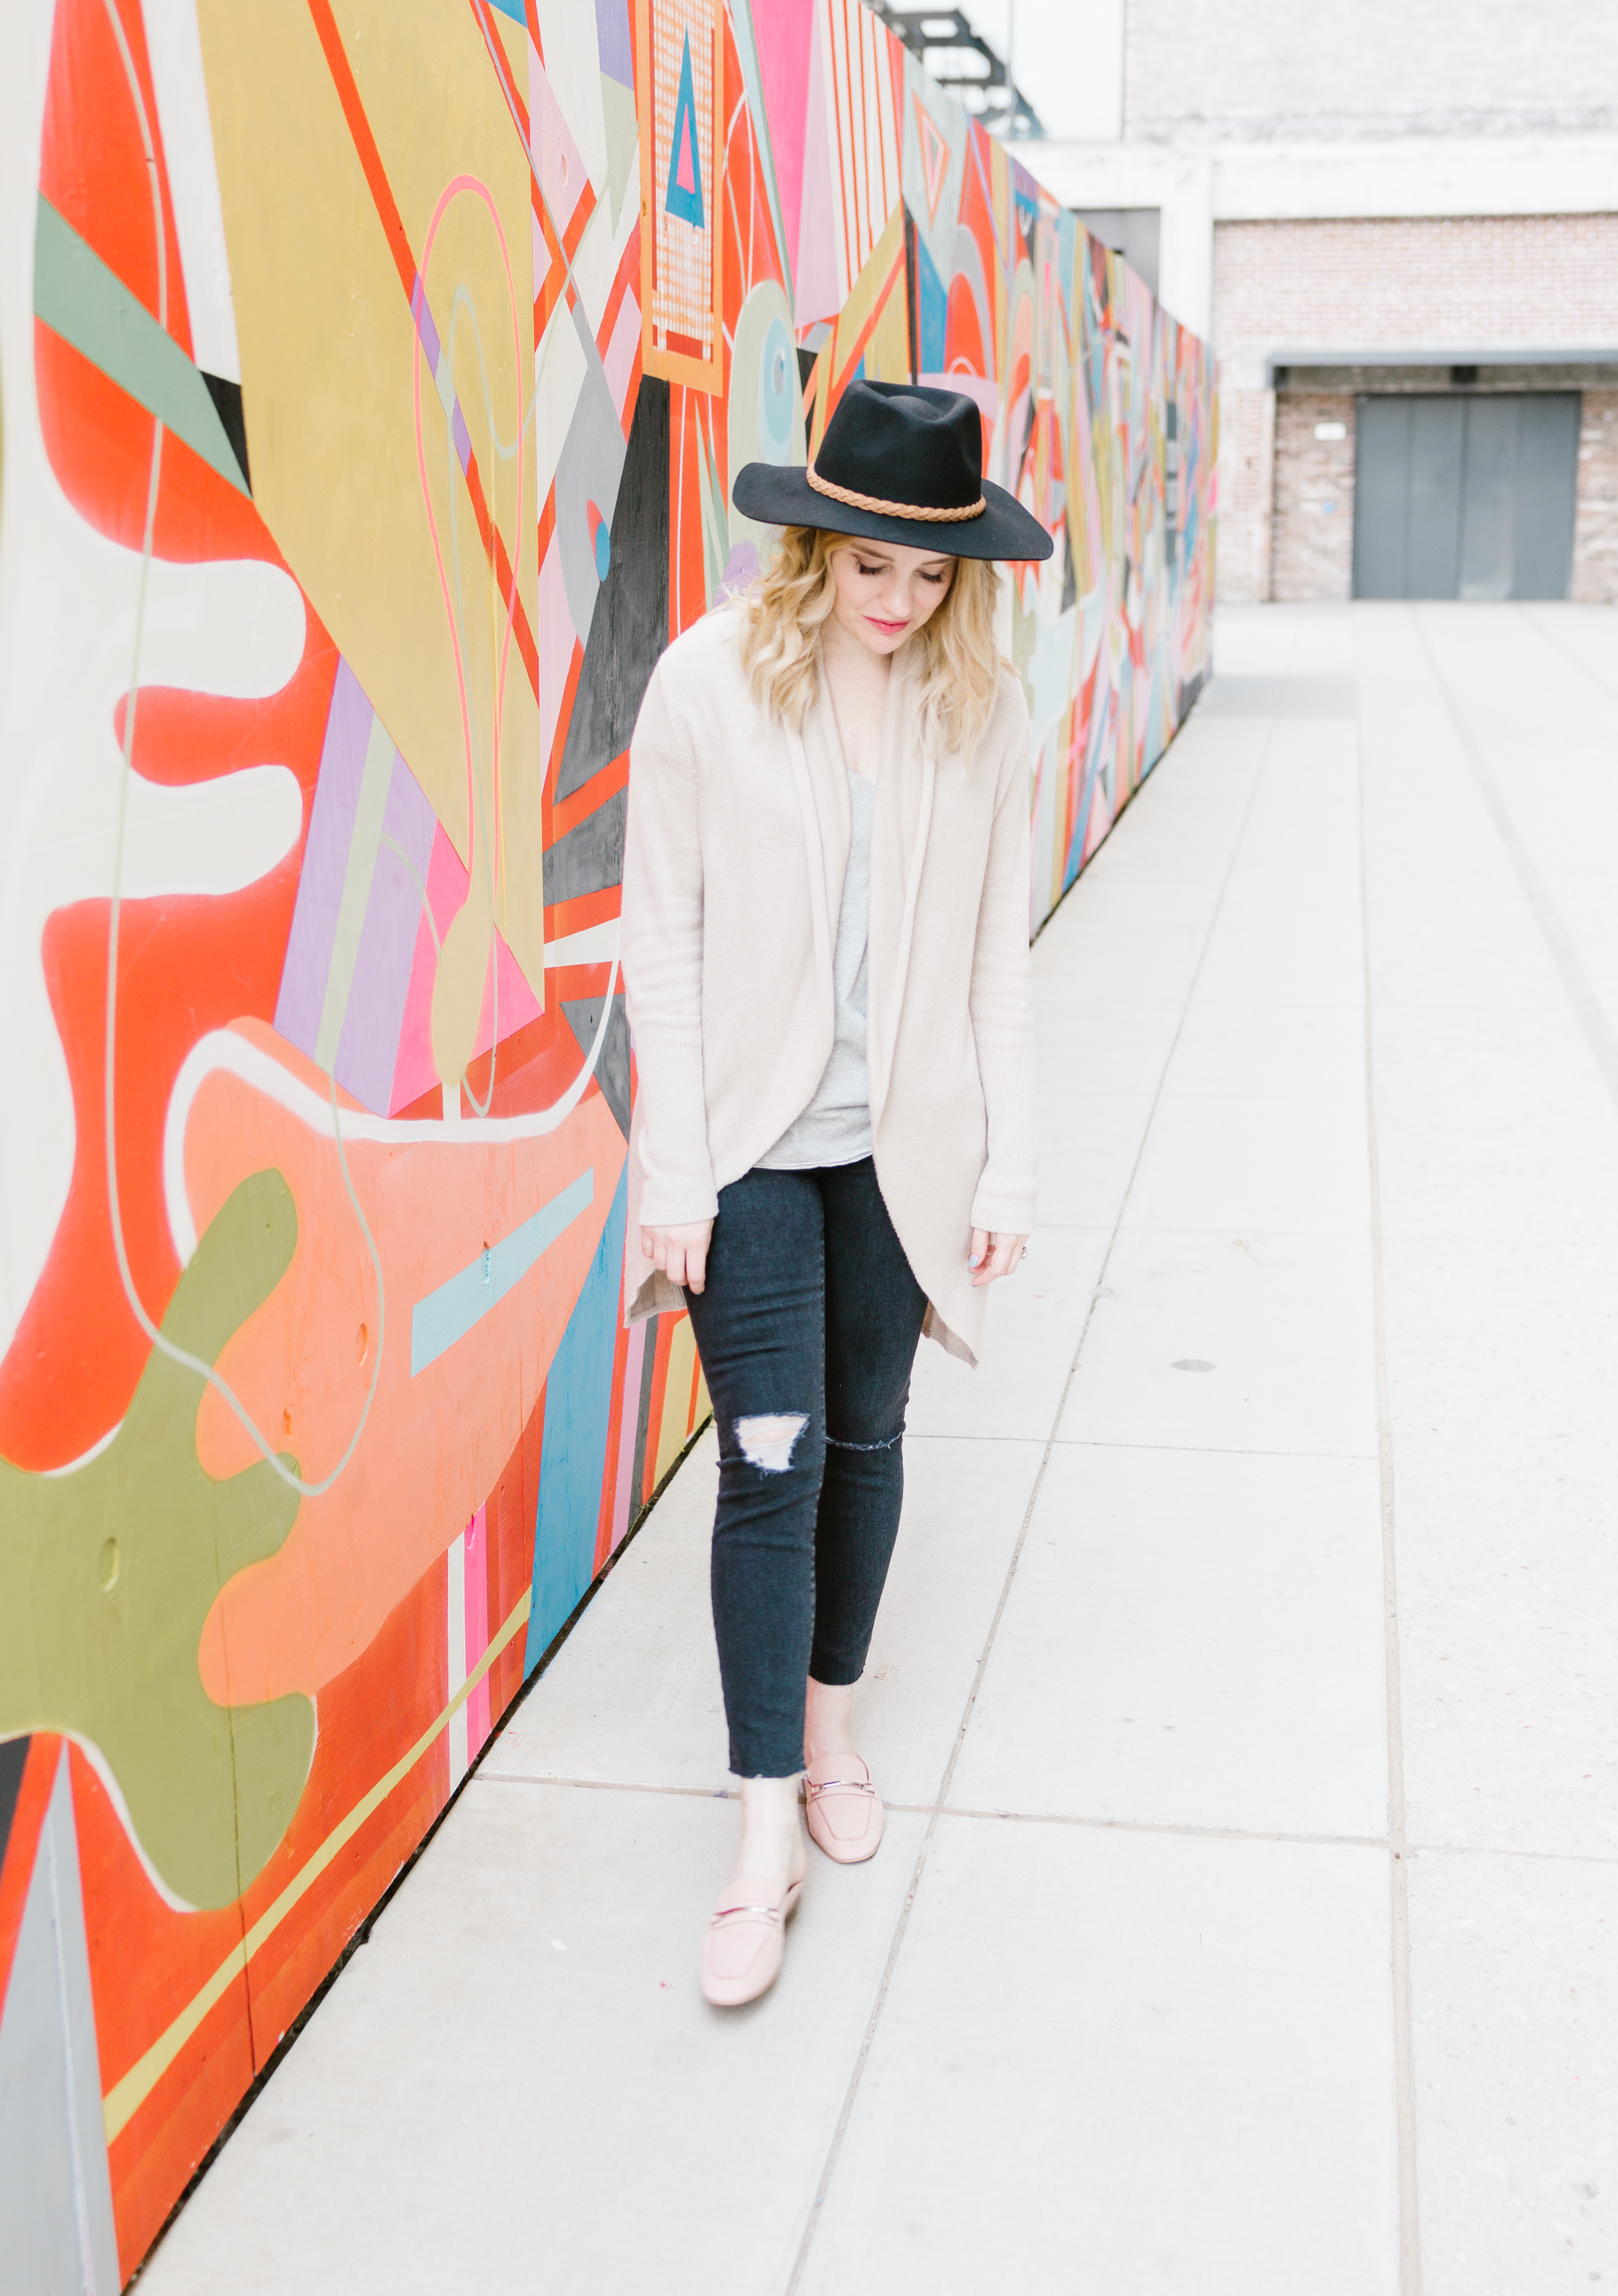 Memphis Fashion Blogger, Pretty In Pink Megan is sharing a style post! Styling Mules: 2 Different Outfits you can easily add to your wardrobe.